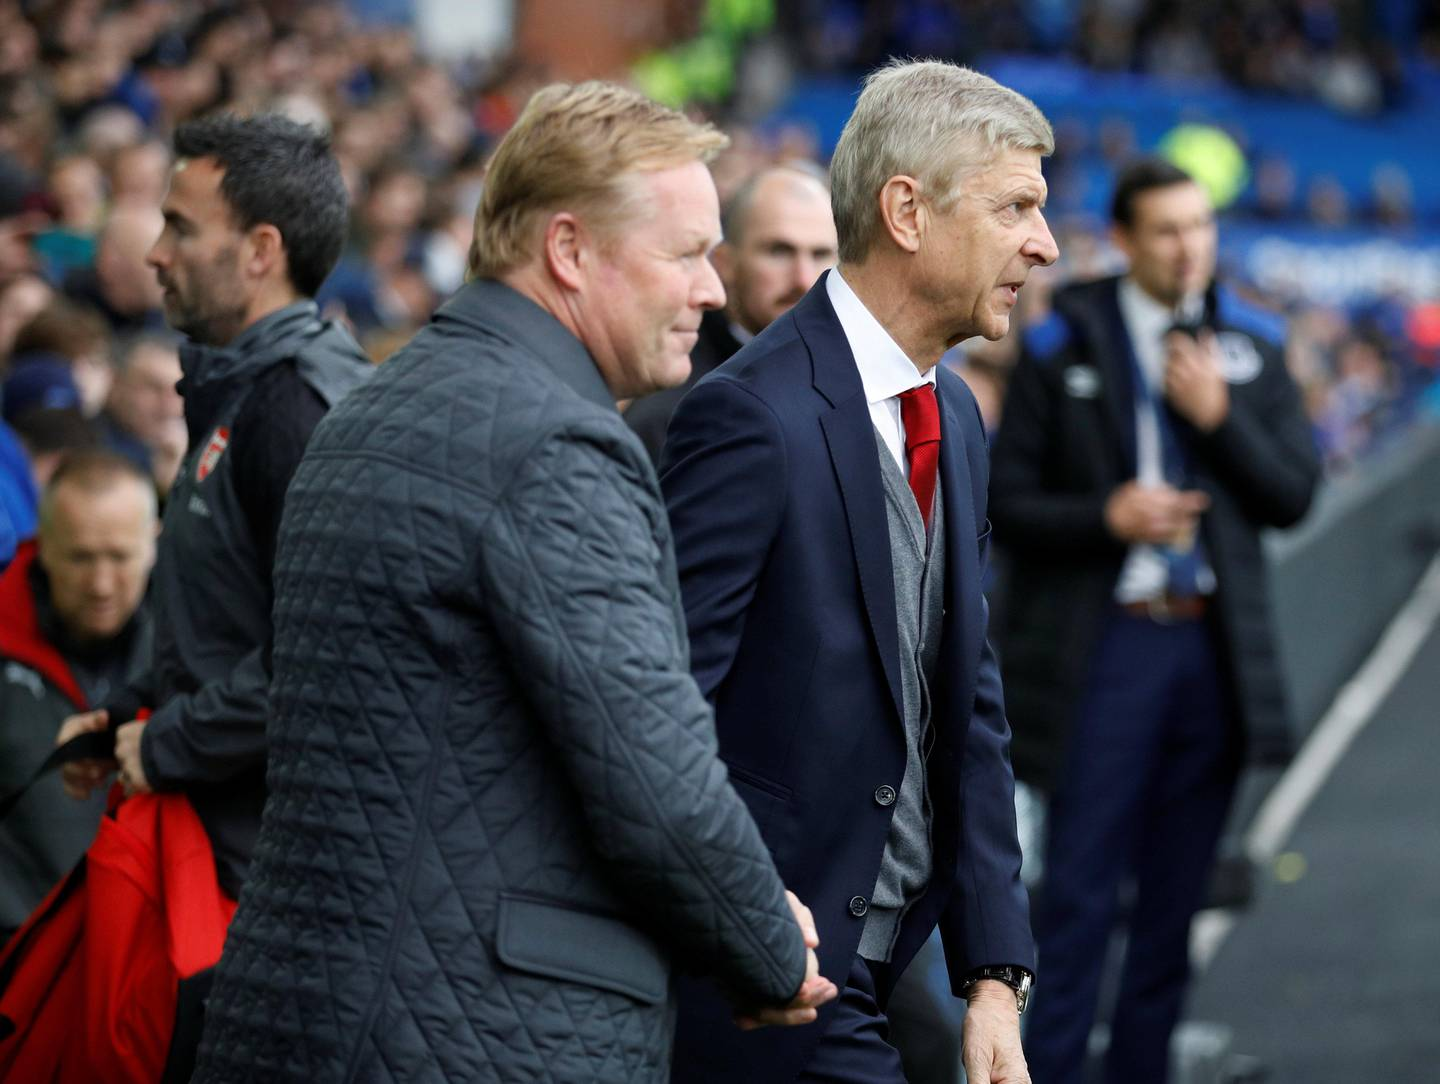 """Soccer Football - Premier League - Everton vs Arsenal - Goodison Park, Liverpool, Britain - October 22, 2017   Everton manager Ronald Koeman and Arsenal manager Arsene Wenger before the match    REUTERS/Phil Noble    EDITORIAL USE ONLY. No use with unauthorized audio, video, data, fixture lists, club/league logos or """"live"""" services. Online in-match use limited to 75 images, no video emulation. No use in betting, games or single club/league/player publications. Please contact your account representative for further details."""